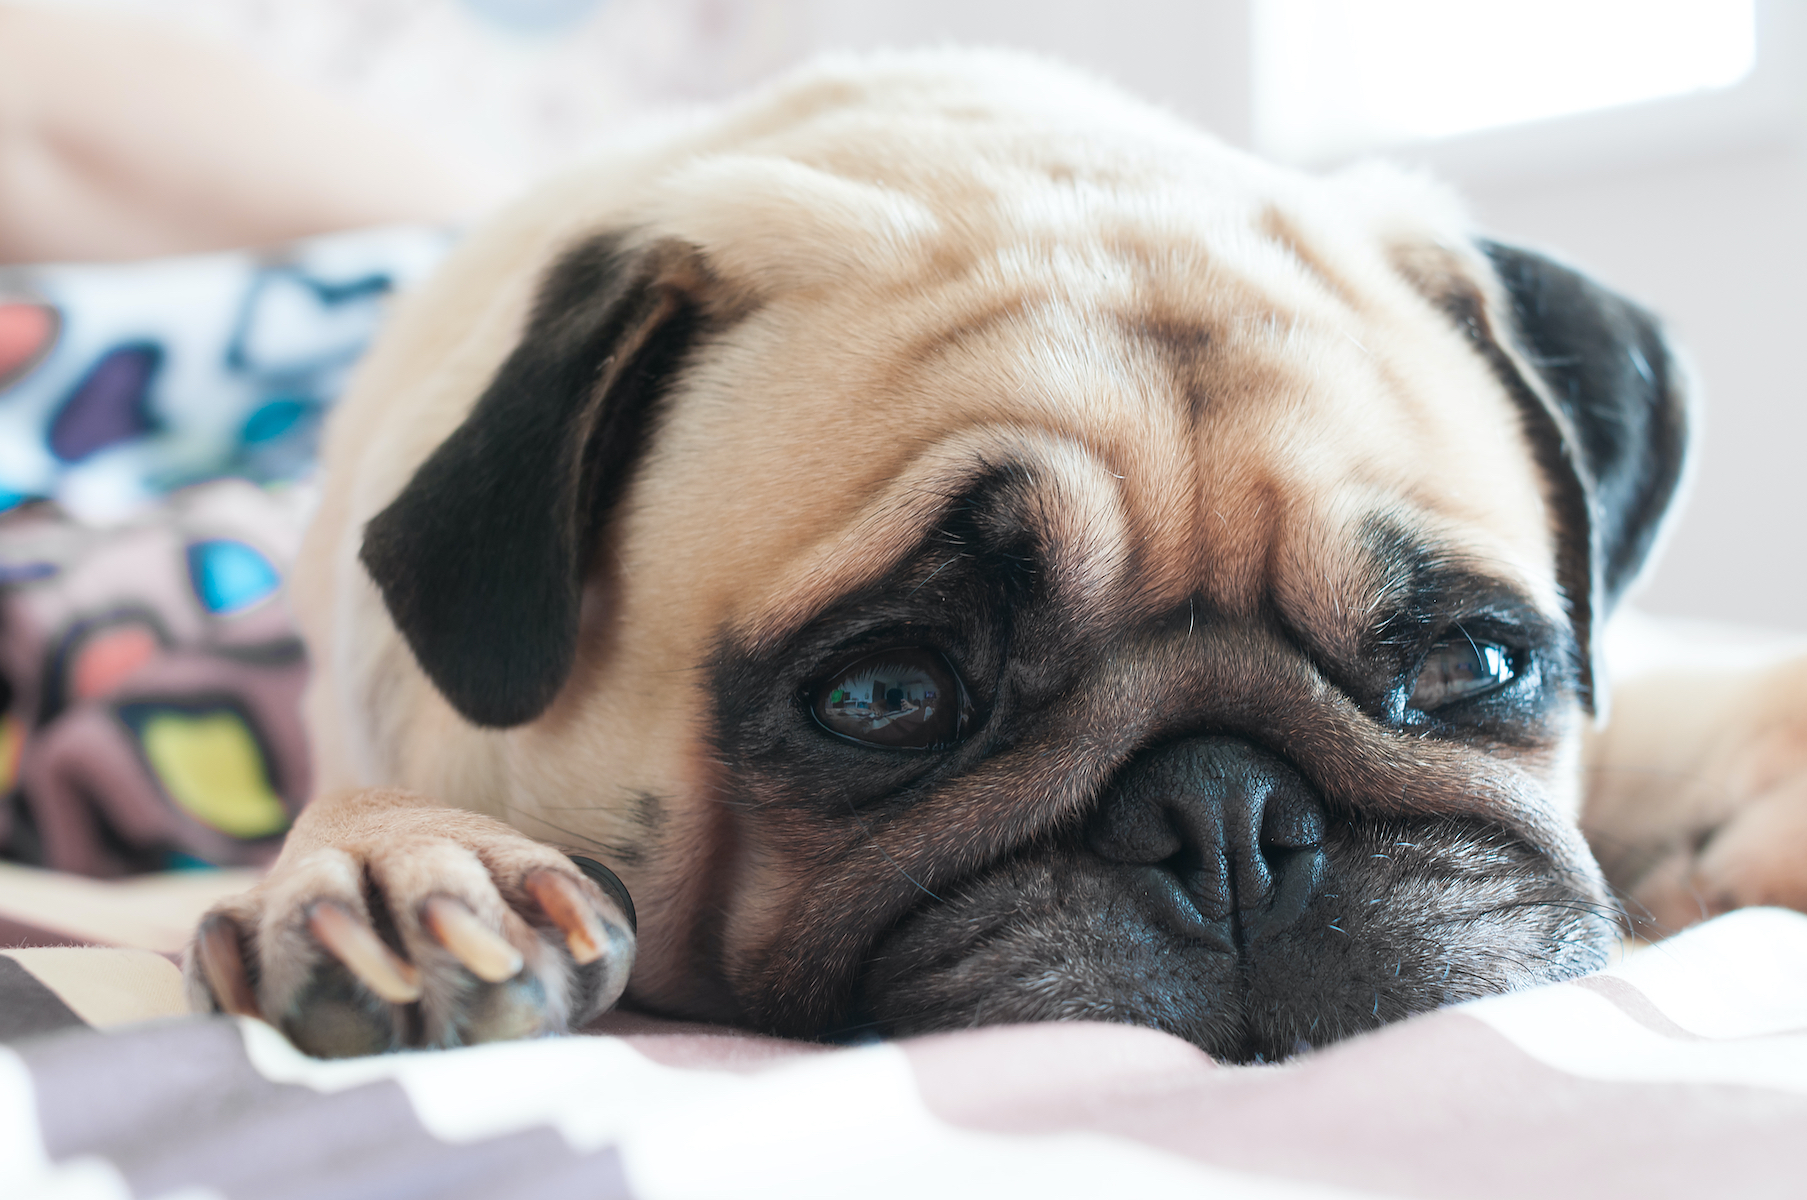 Canva - Cute pug puppy dog sleeping on the bed